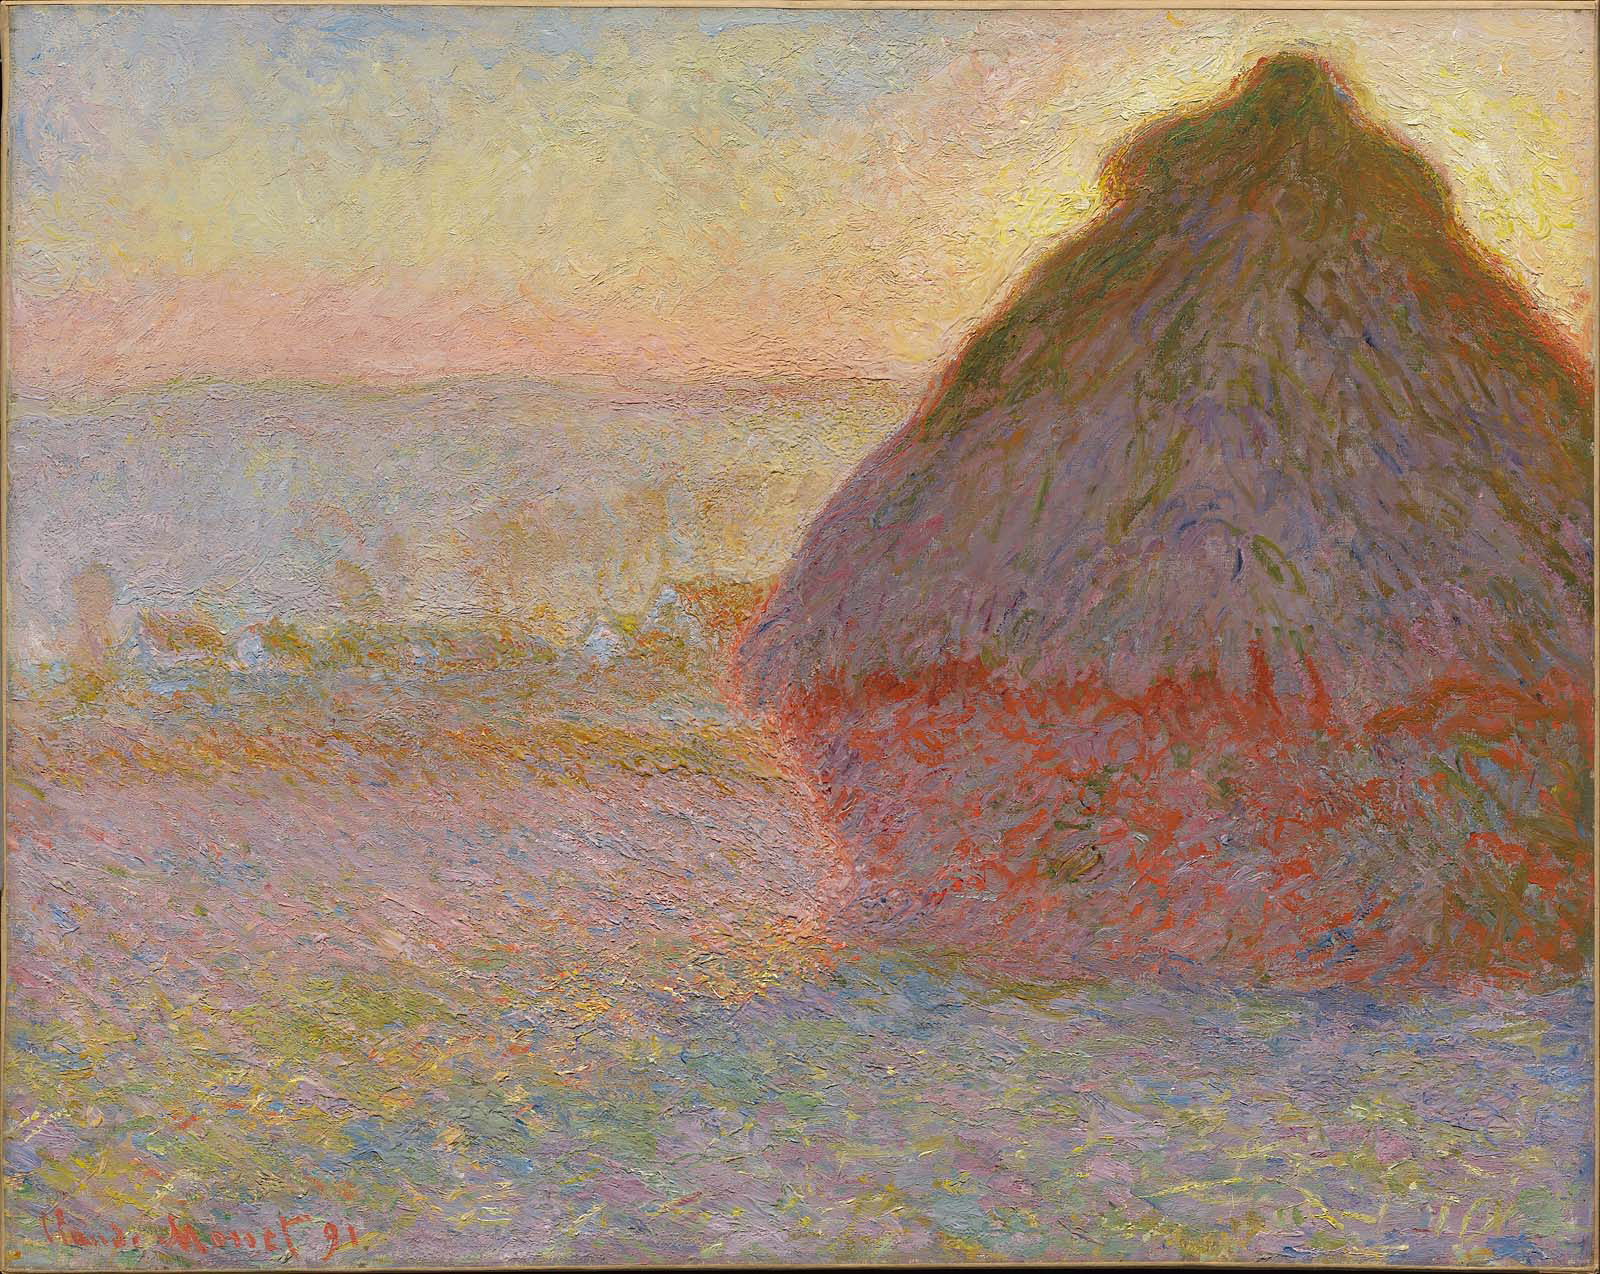 Monet - Grainstack at Sunset 1890. In 1890 and 1891, Monet painted a group  of pictures of the stacks of wheat - art-monet.com